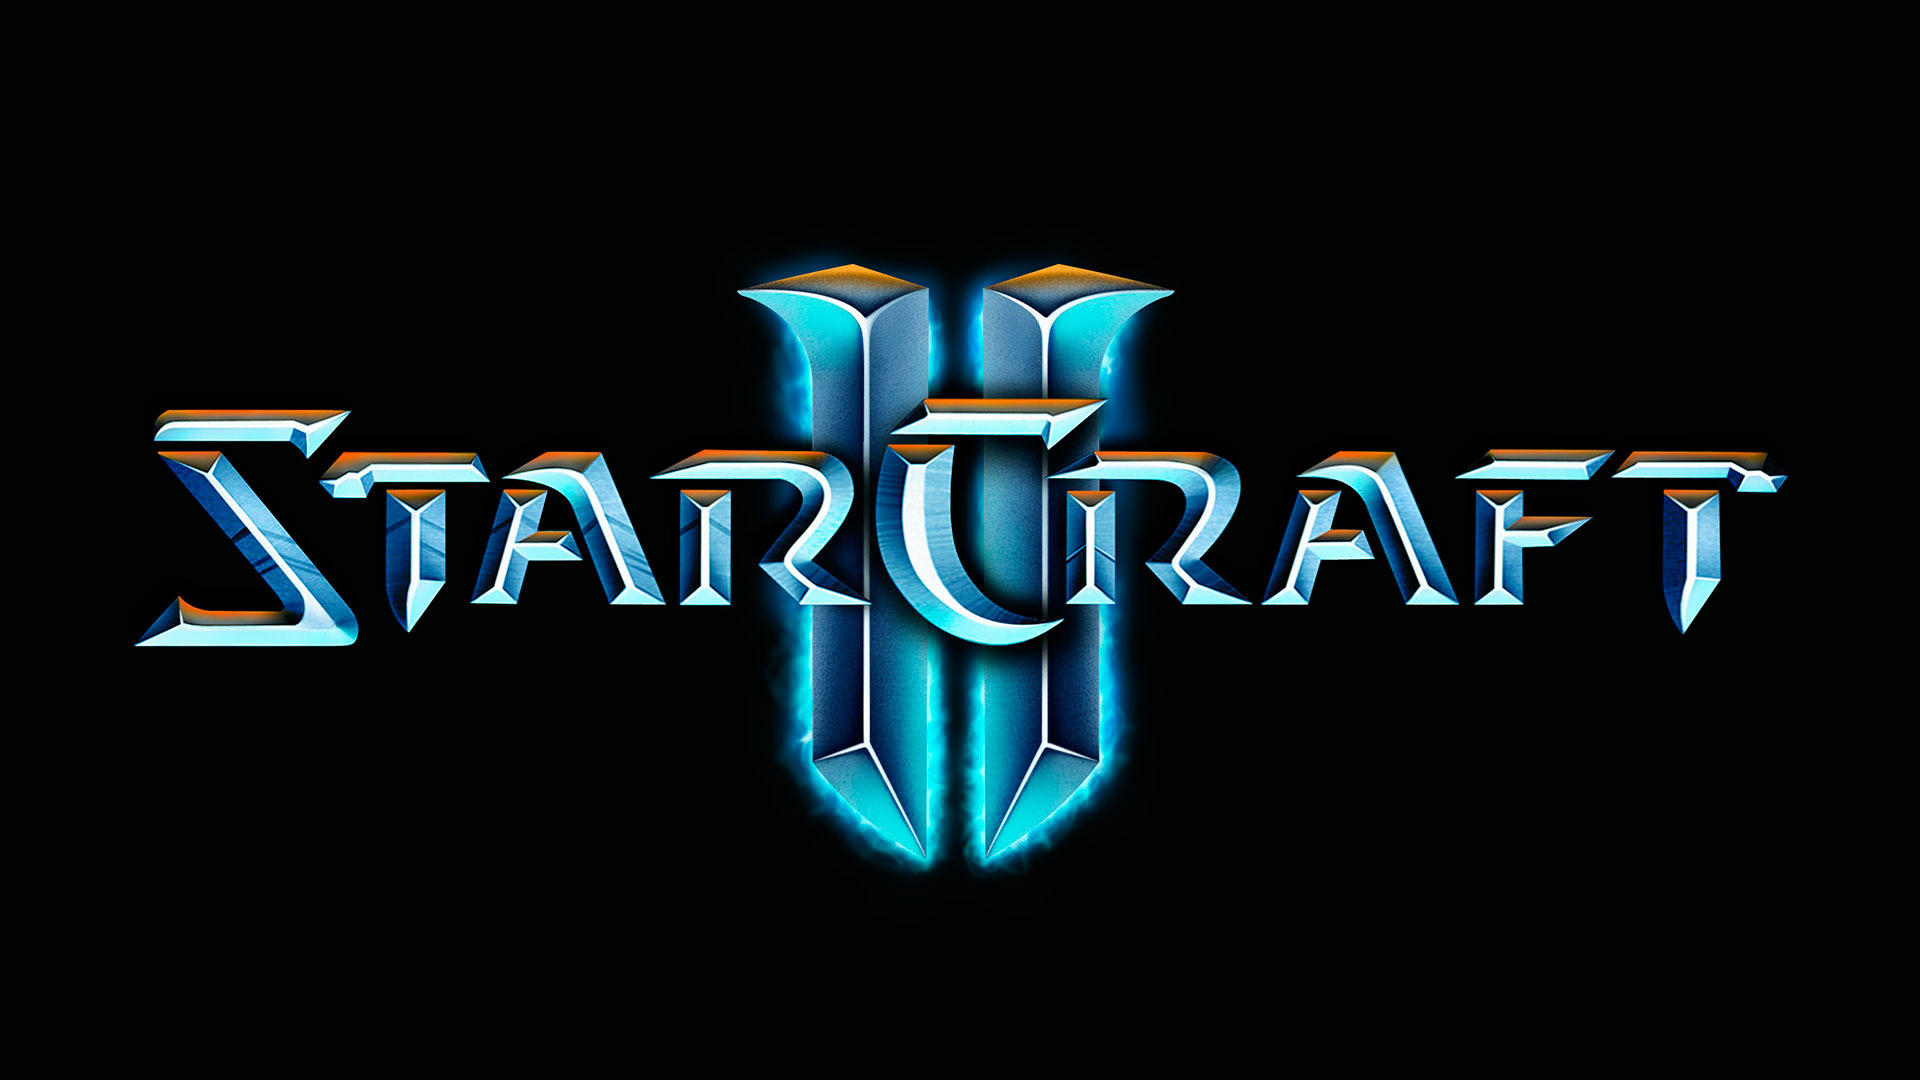 Starcraft II pasará a ser free to play